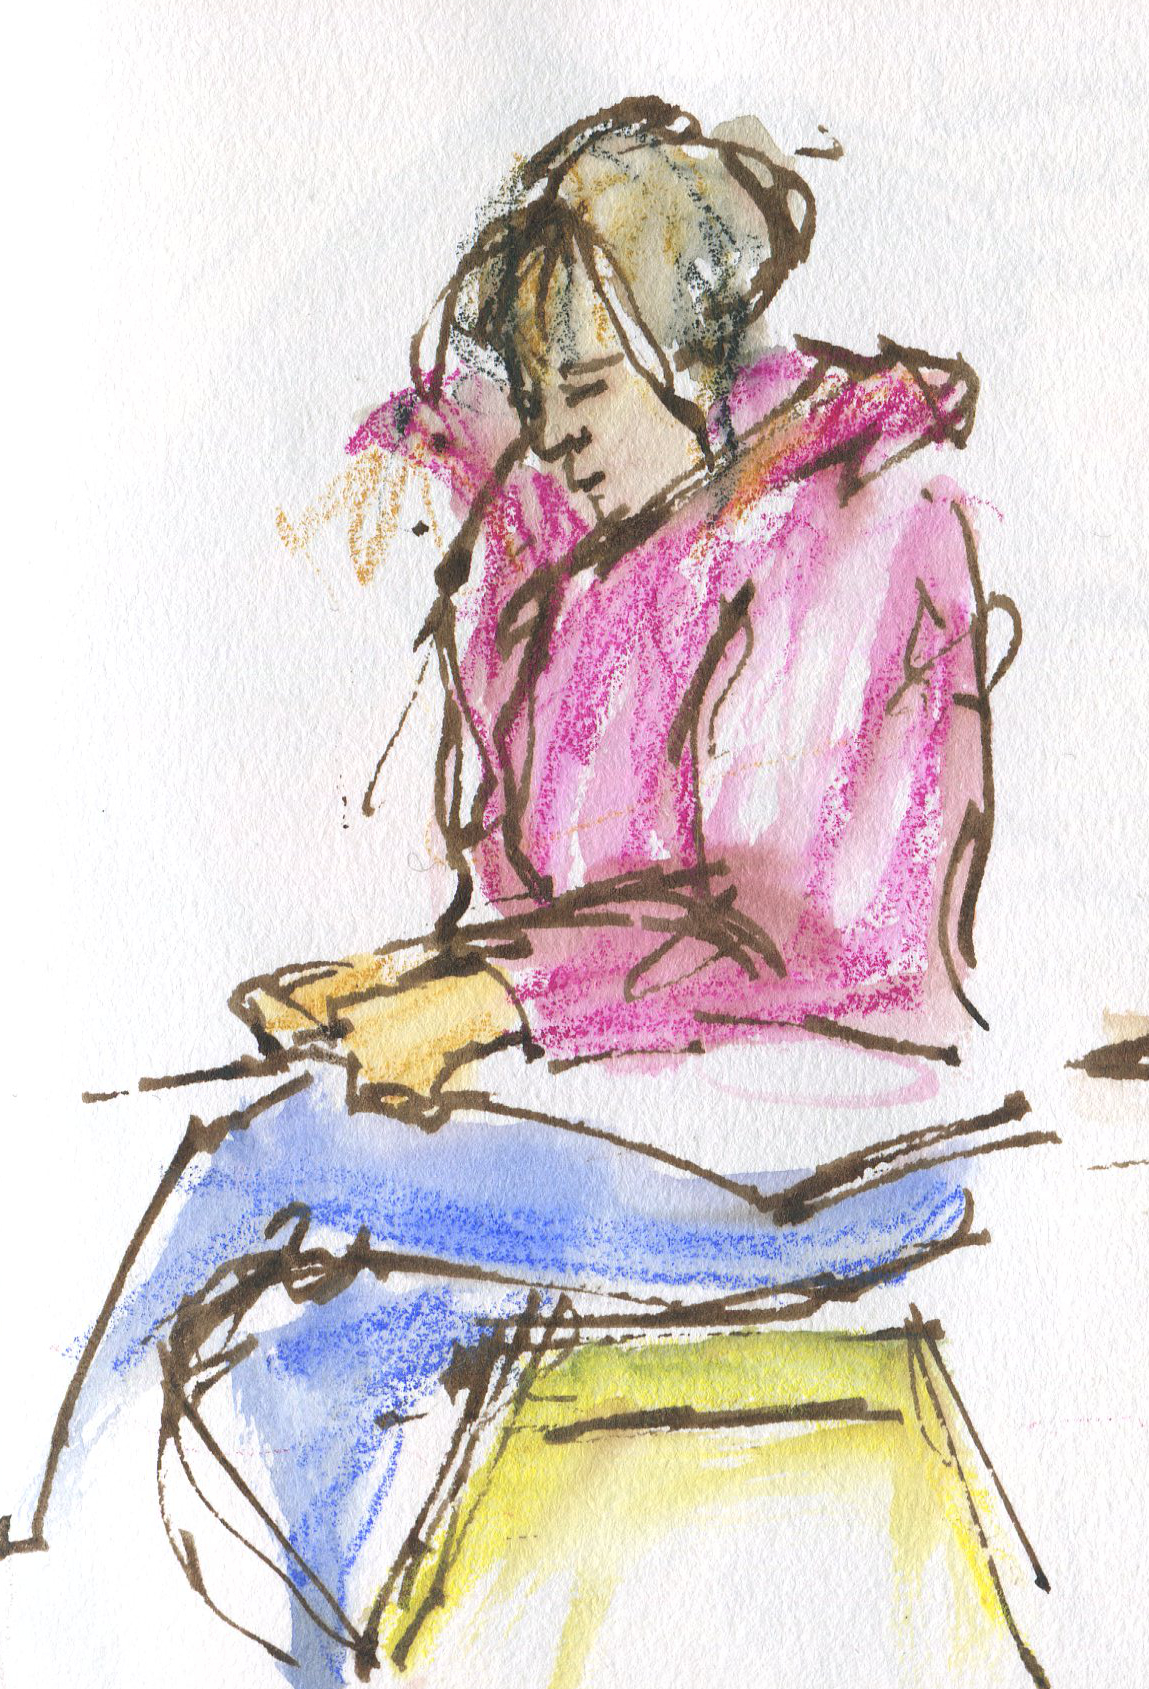 Fellow sketchers make perfect subjects because they are captive subjects and they don't mind being sketched.